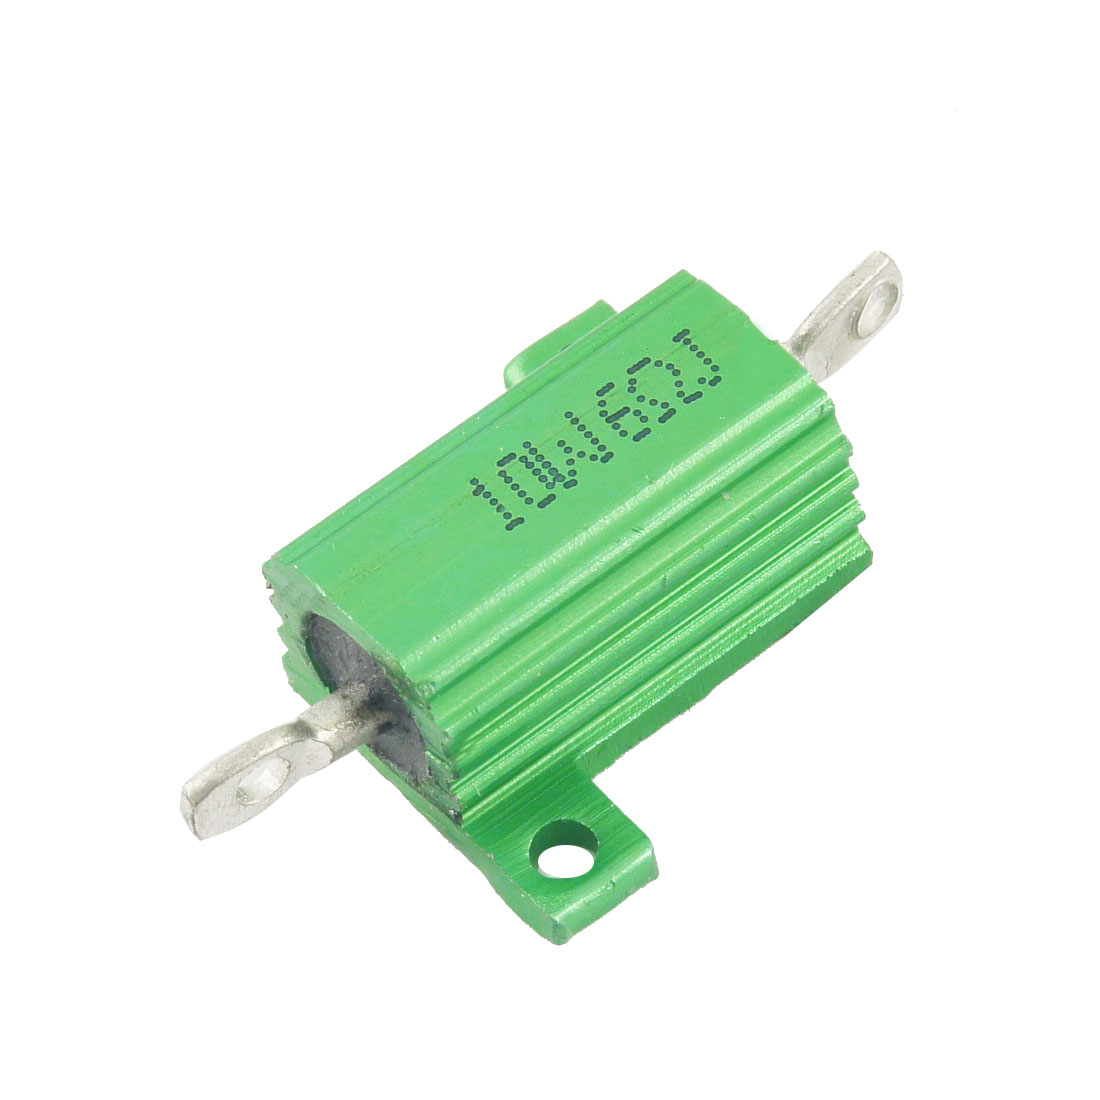 10 Watt 6 Ohm 5% Green Aluminum Shell Wire Wound Resistor